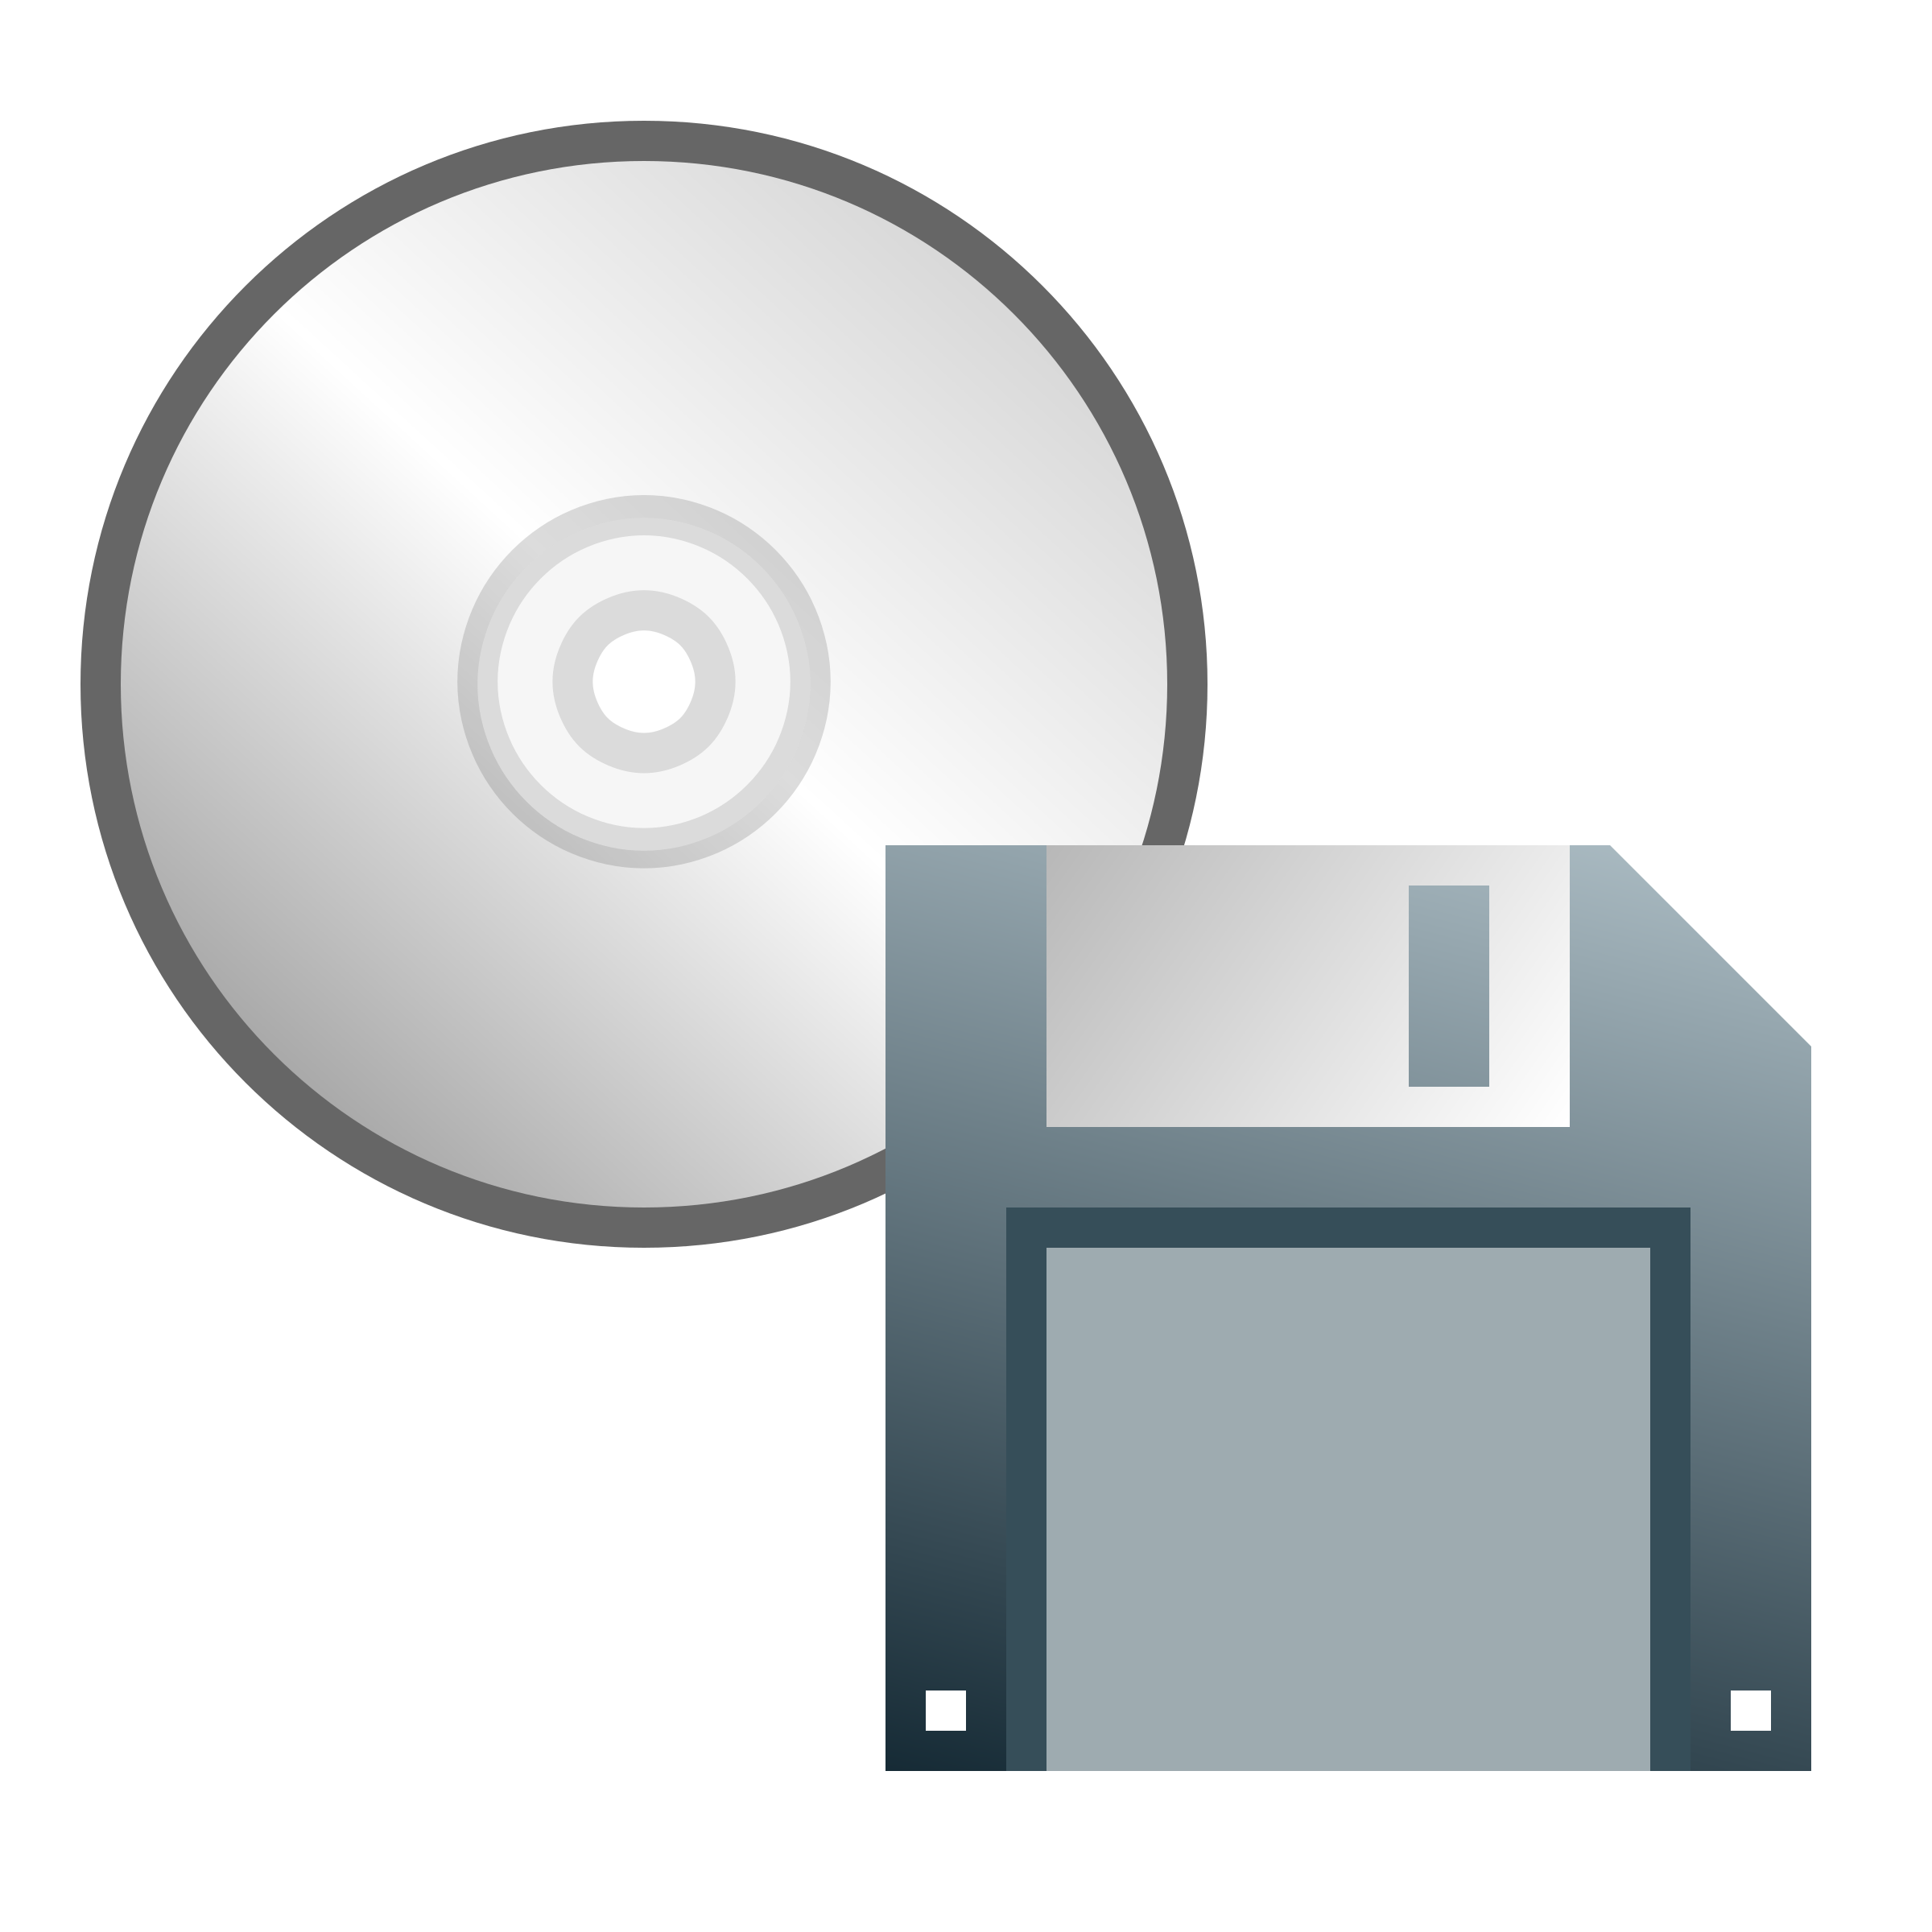 CD or floppy disk icon by jhnri4